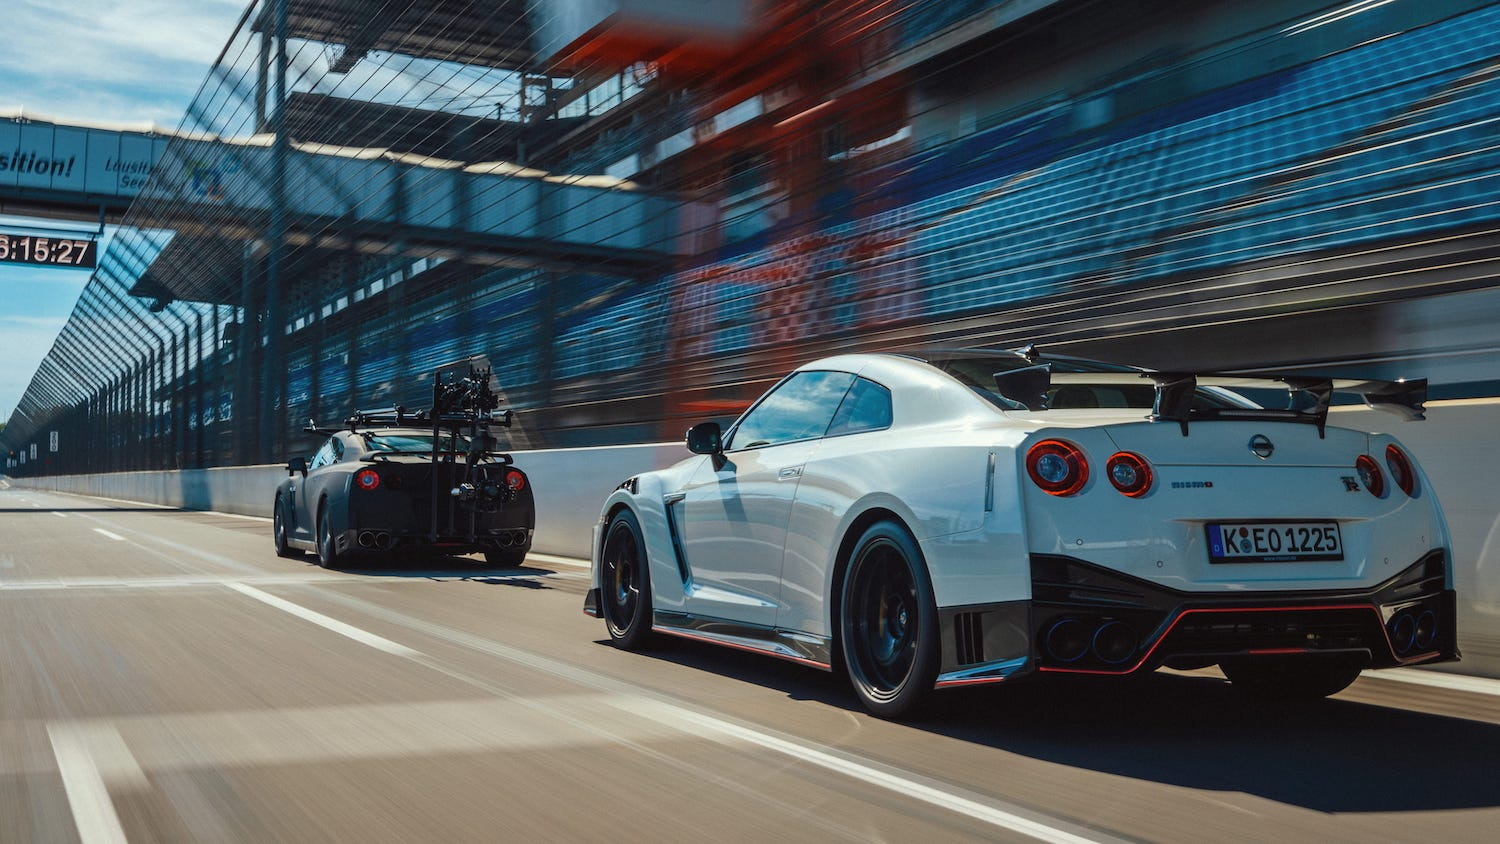 nissan gtr camera car and shot car rear three-quarter